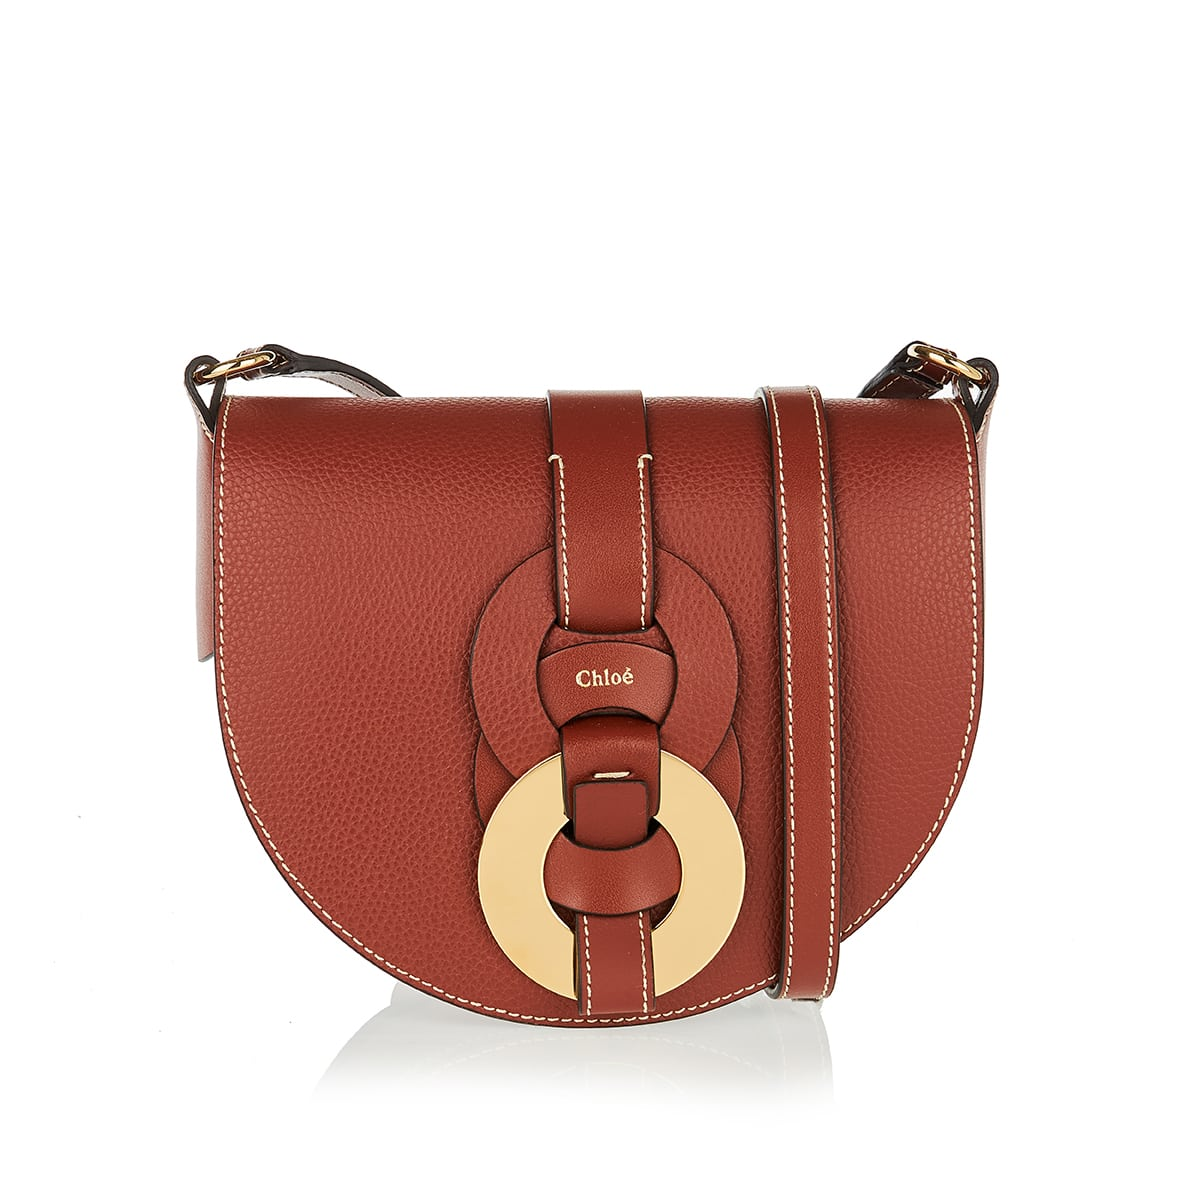 Darryl Small saddle bag